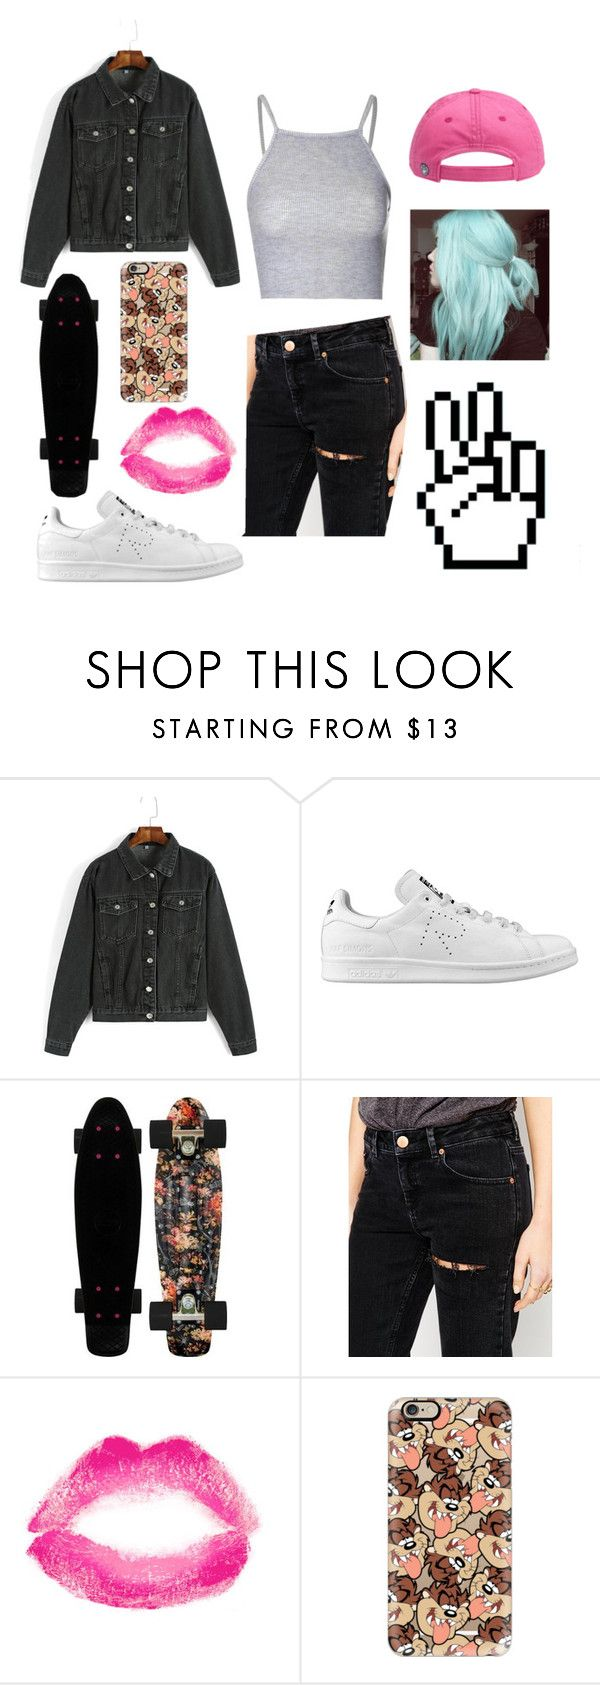 """Uhm okey?"" by aamevl on Polyvore featuring adidas, ASOS, Topshop, Casetify and Glamorous"